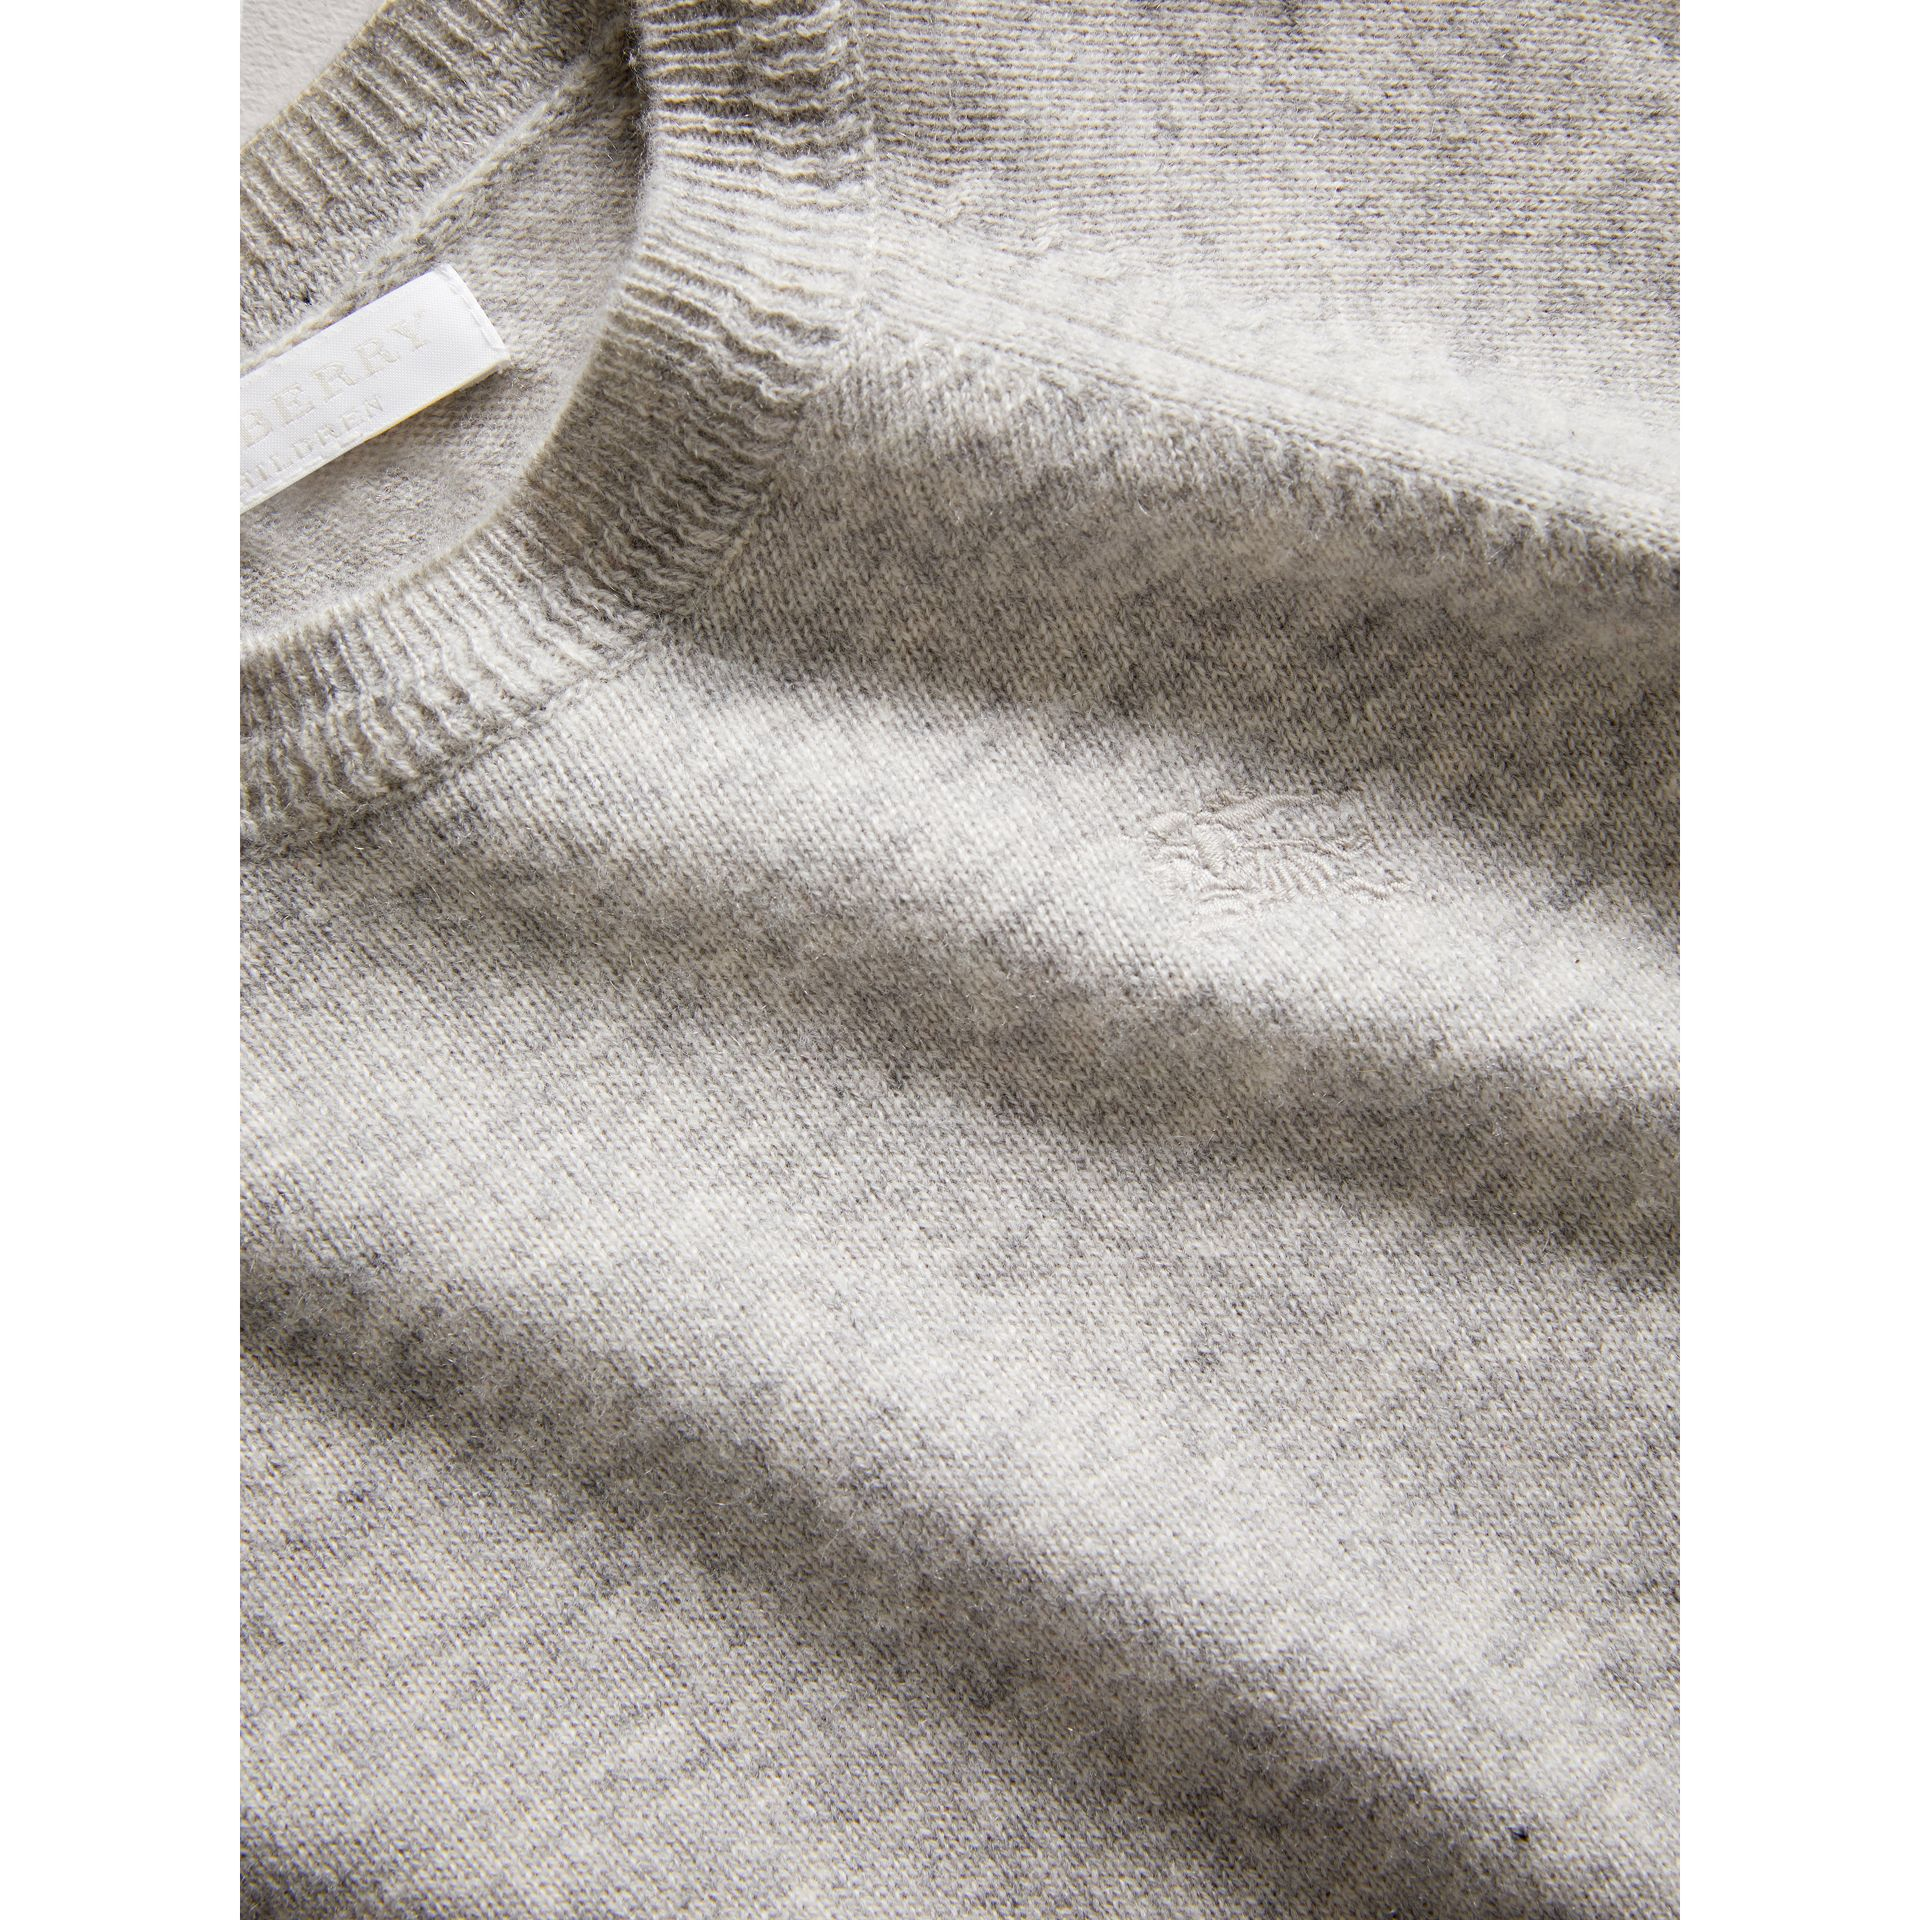 Check Detail Cashmere Sweater in Light Grey Melange | Burberry - gallery image 1